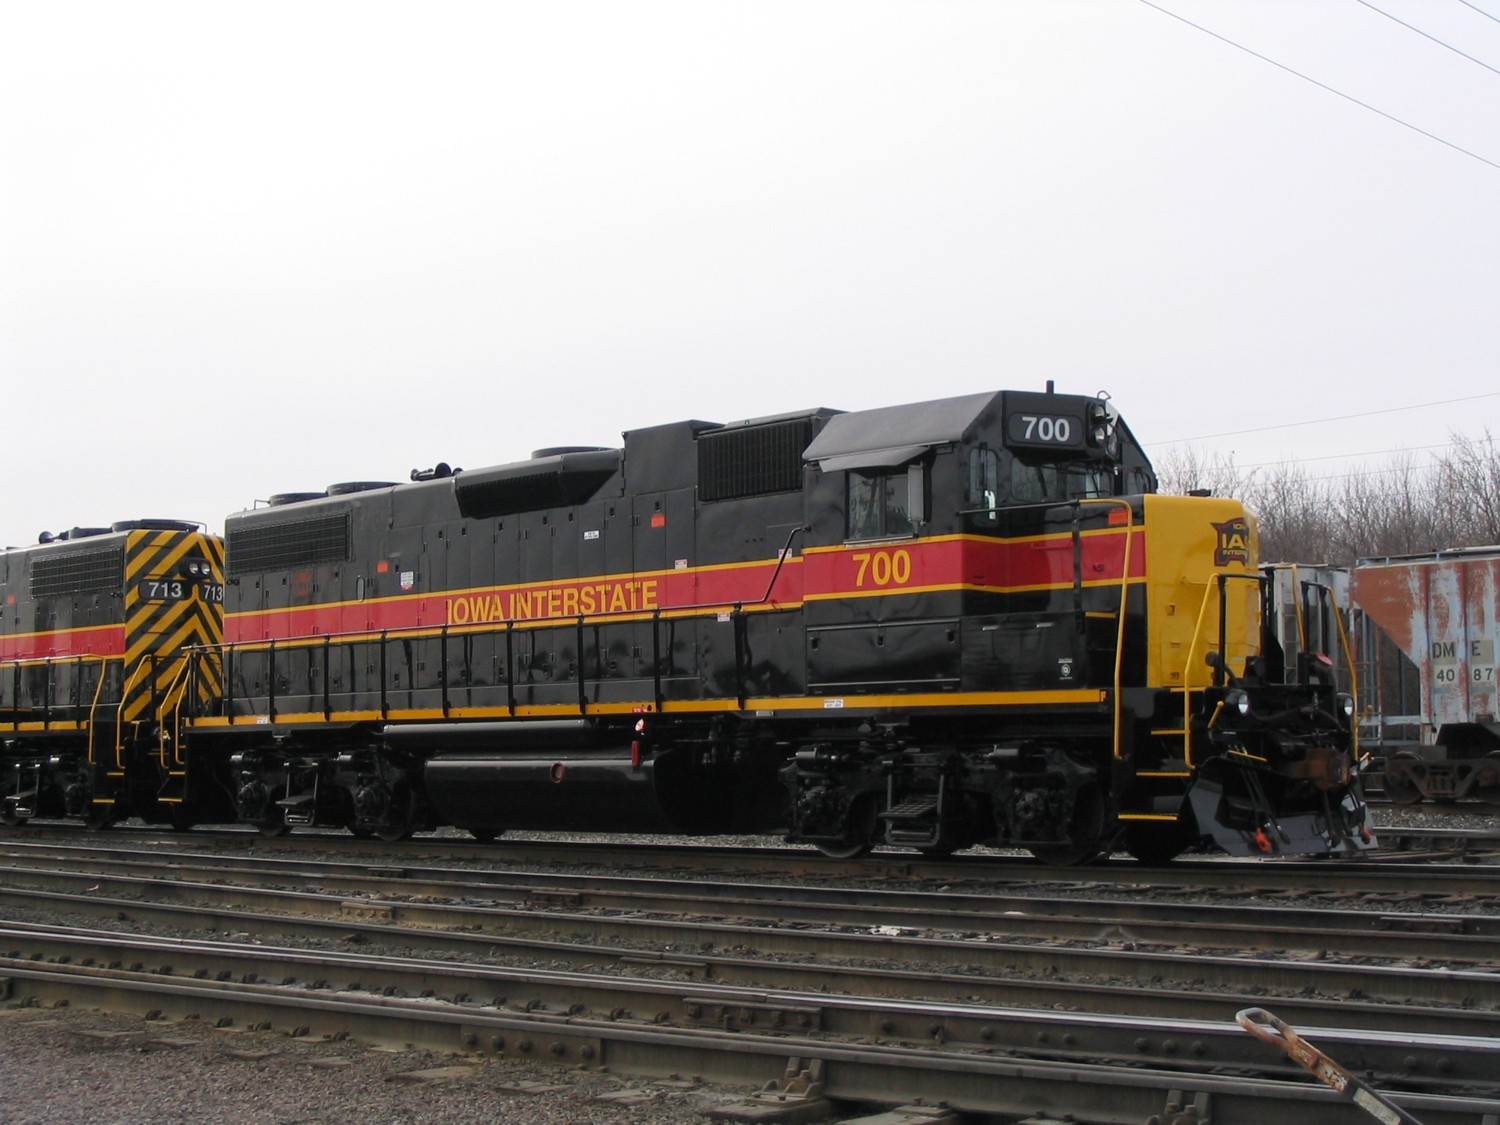 IAIS 700 at Davenport, IA on 22-Dec-2004